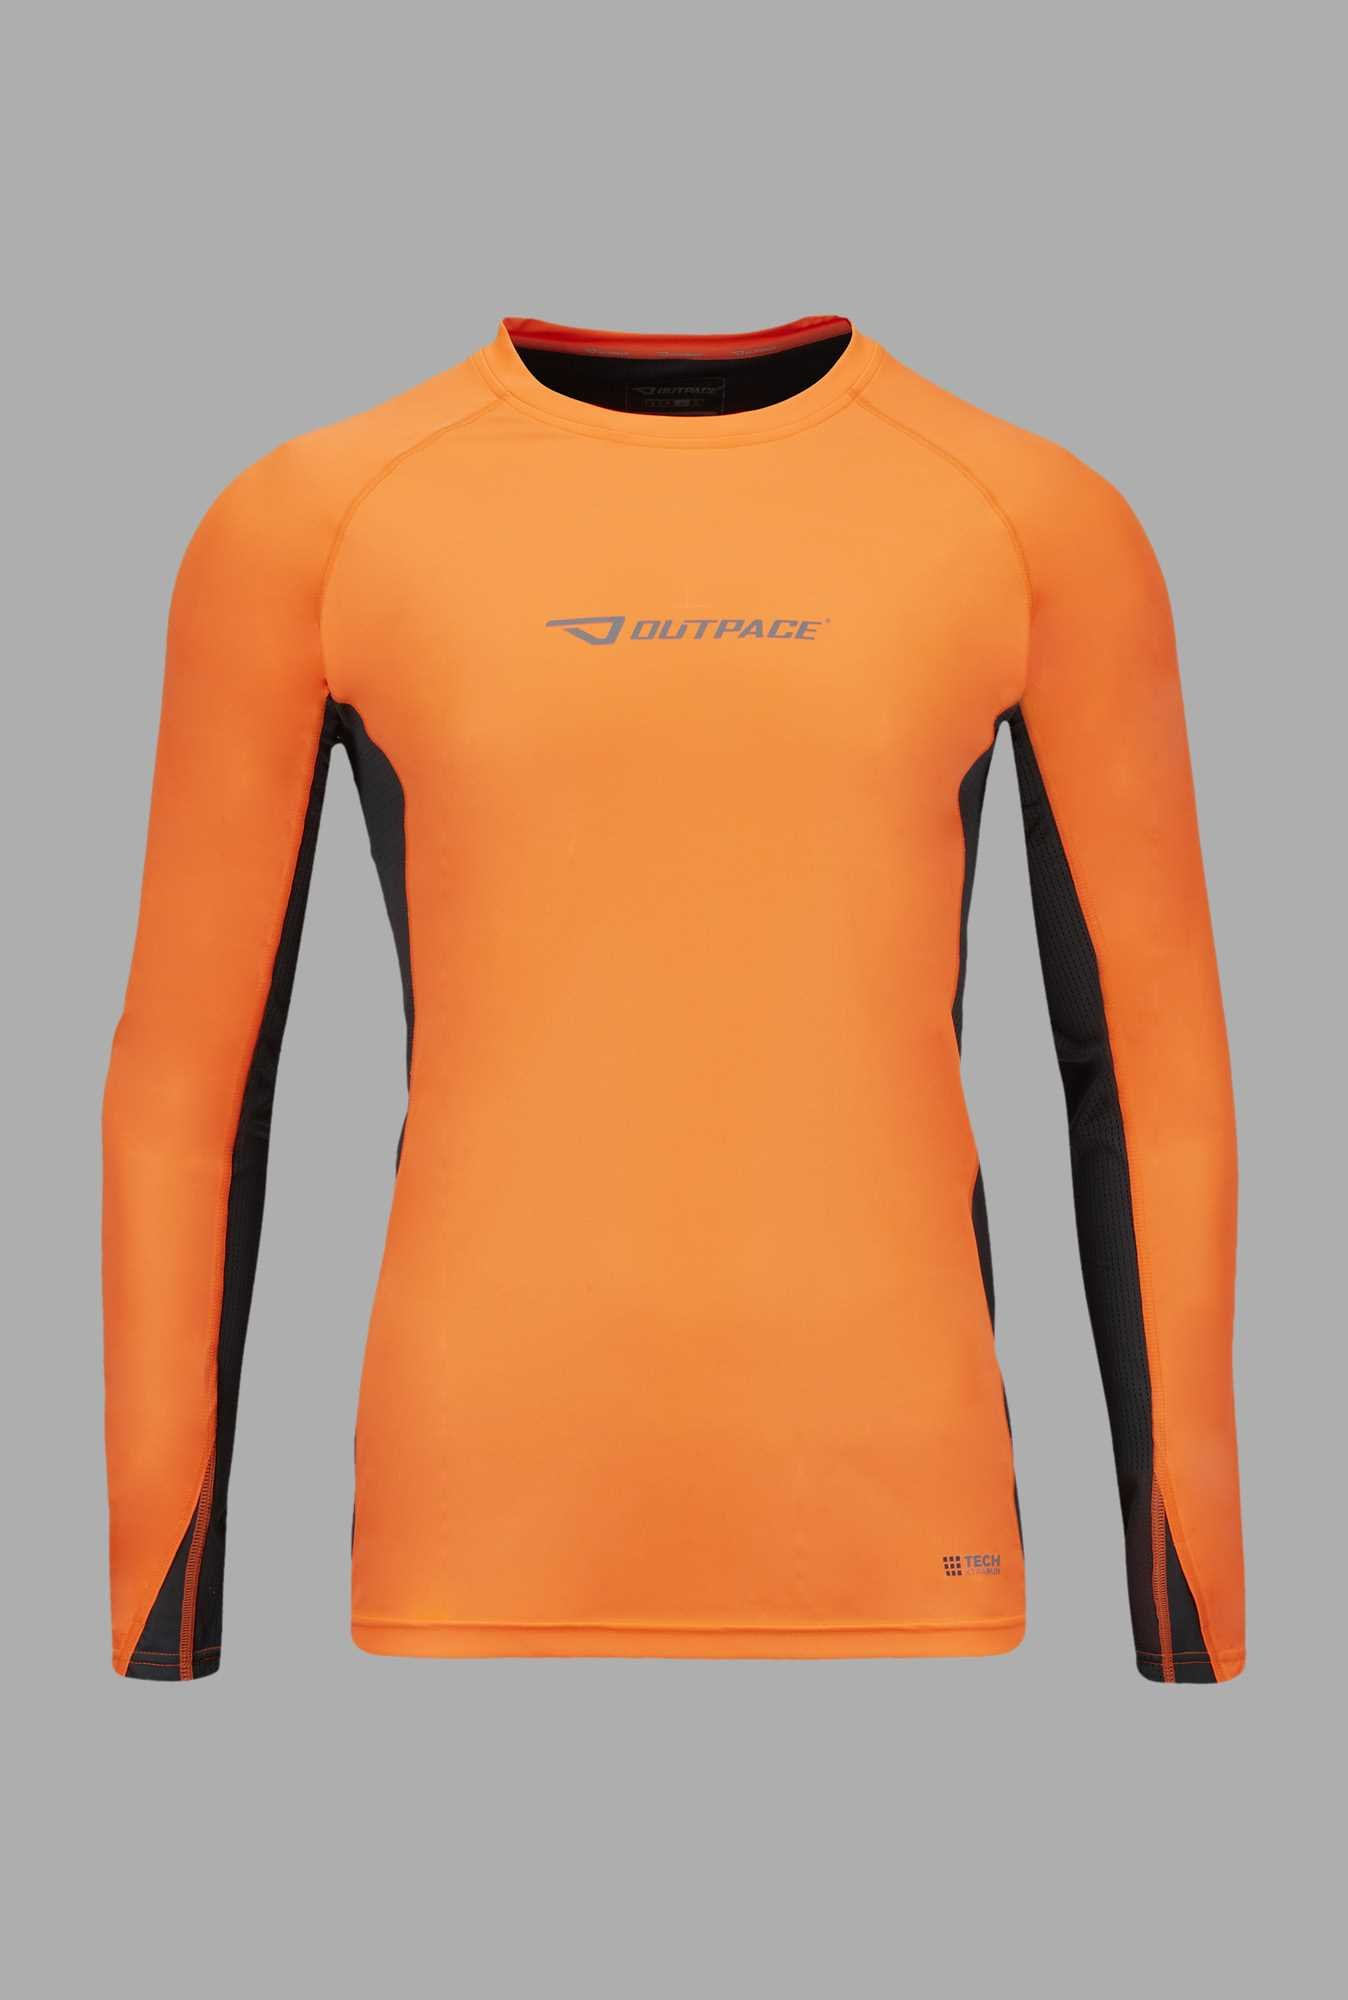 Outpace Orange & Black Solid Running Sweatshirt